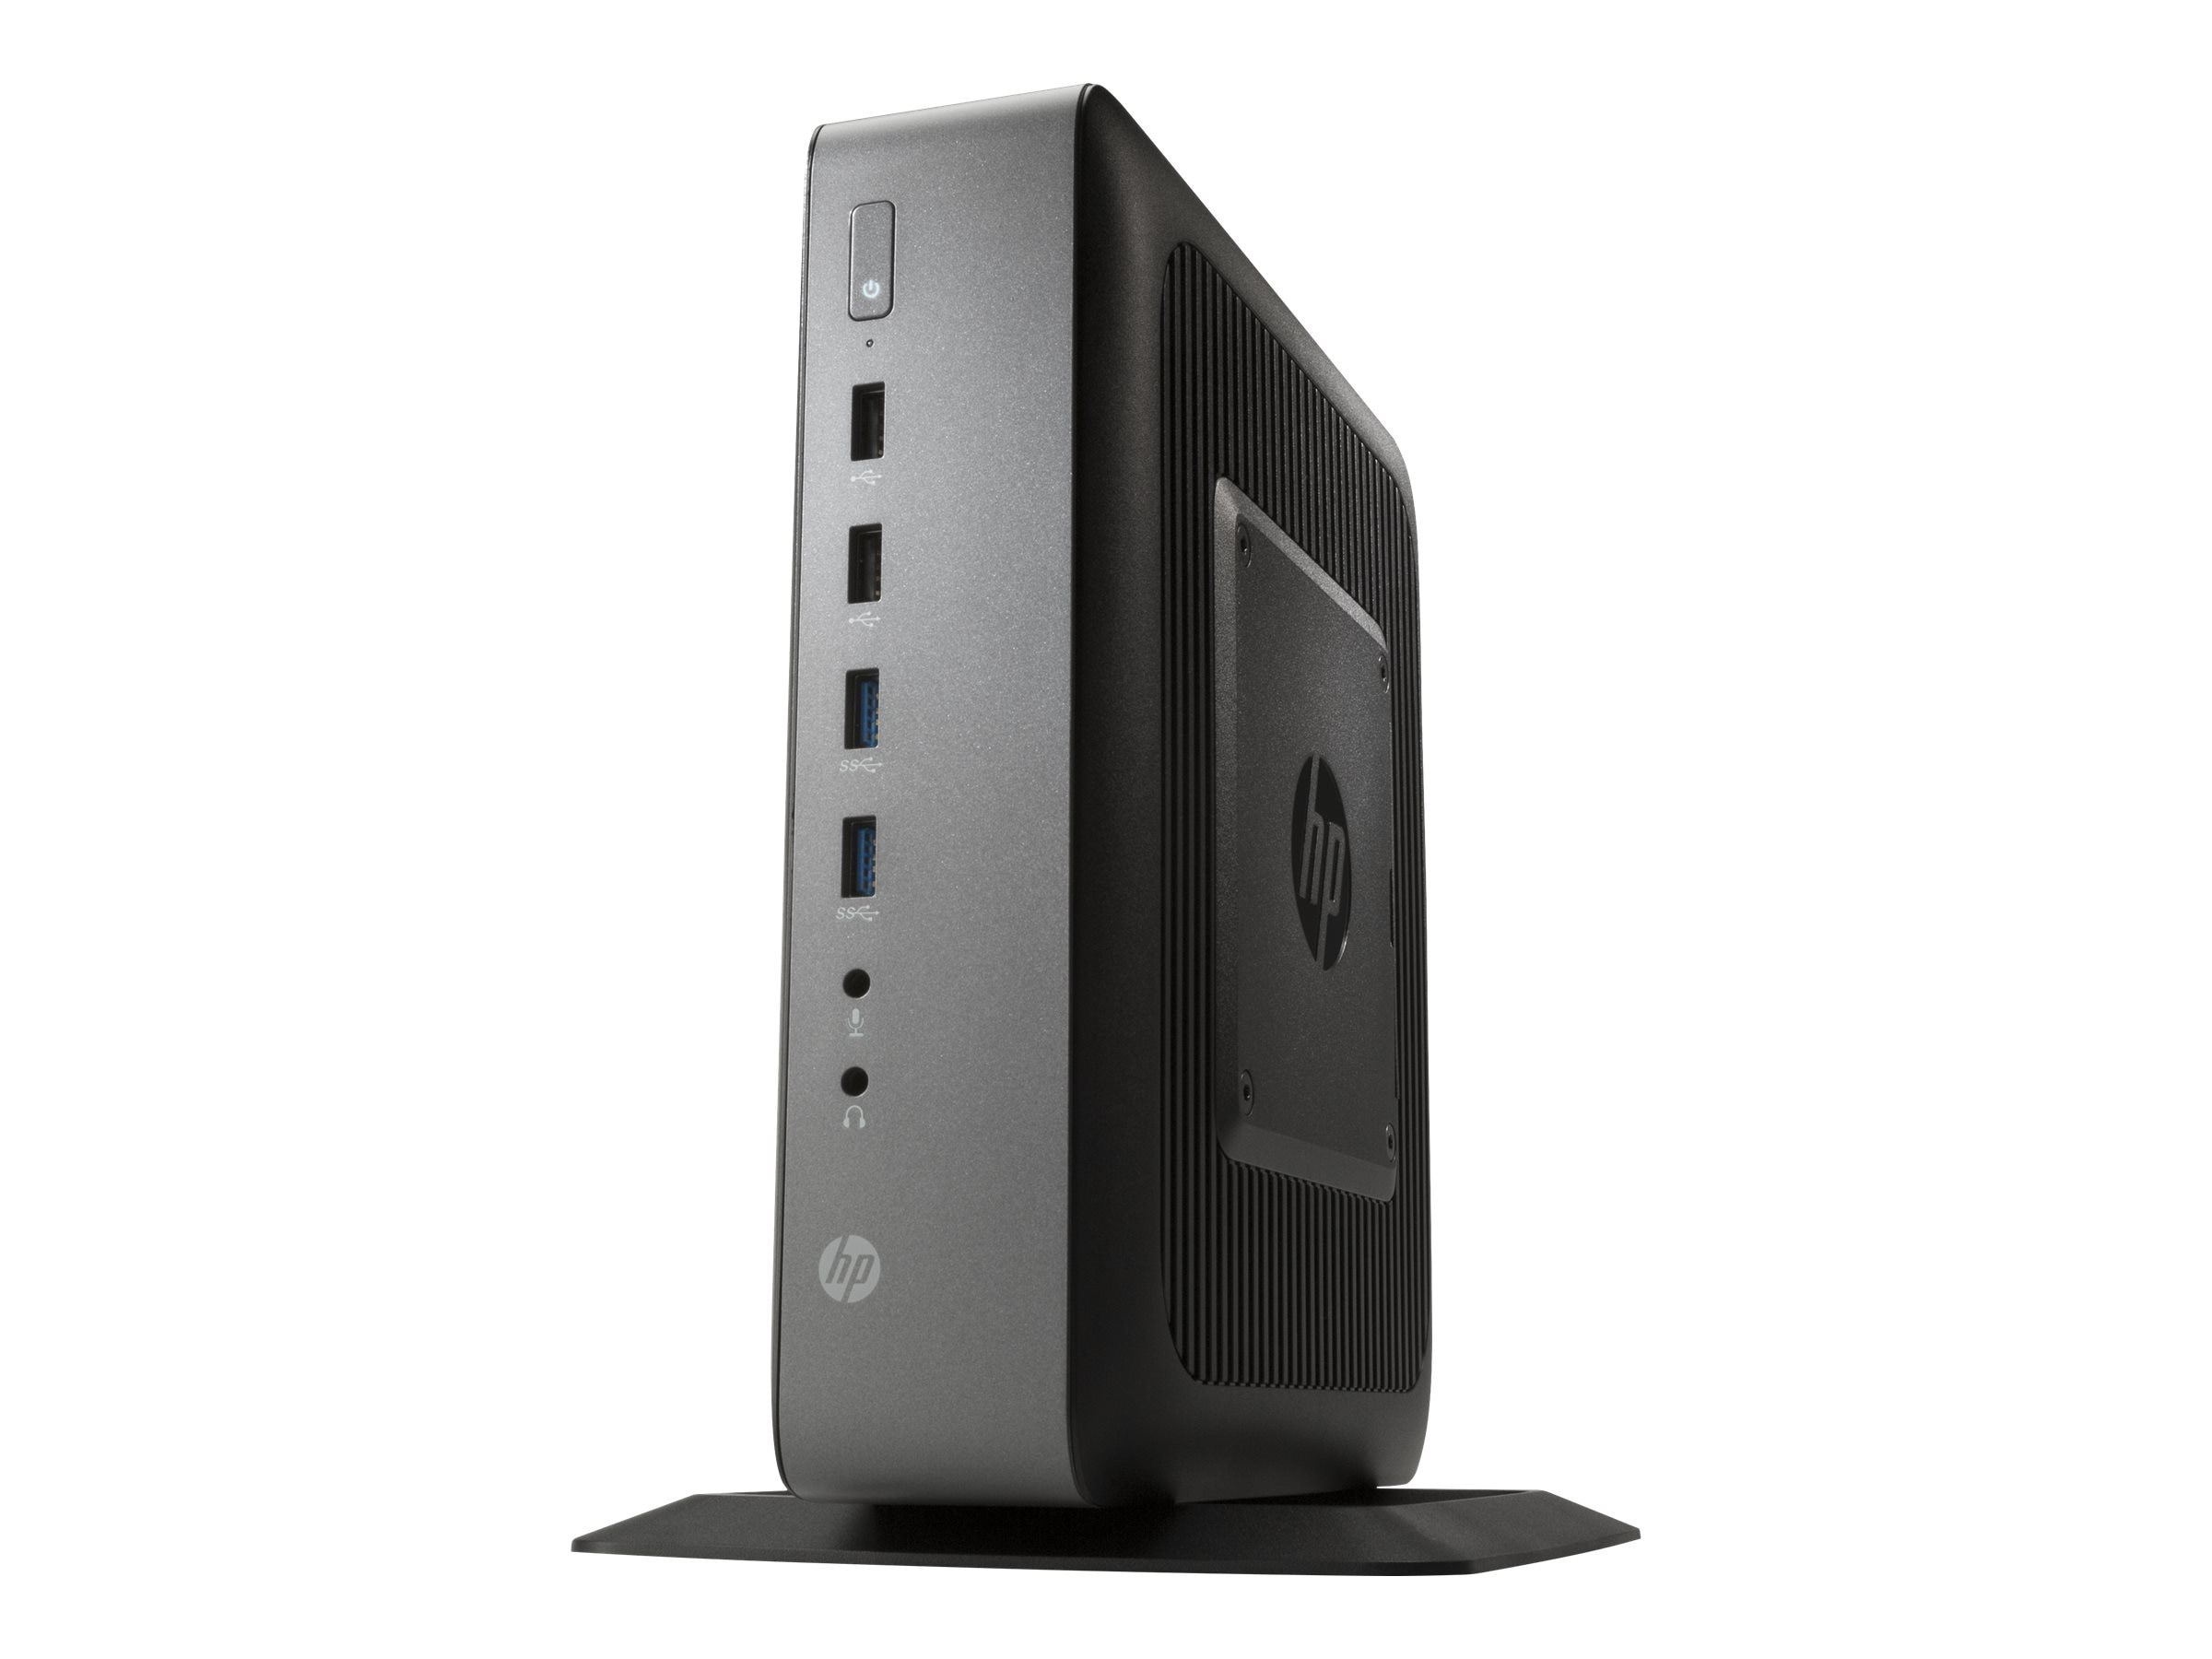 HP t620 PLUS Flexible Thin Client AMD QC GX-420CA 2.0GHz 4GB 16GB Flash HD8400E ac BT WE864